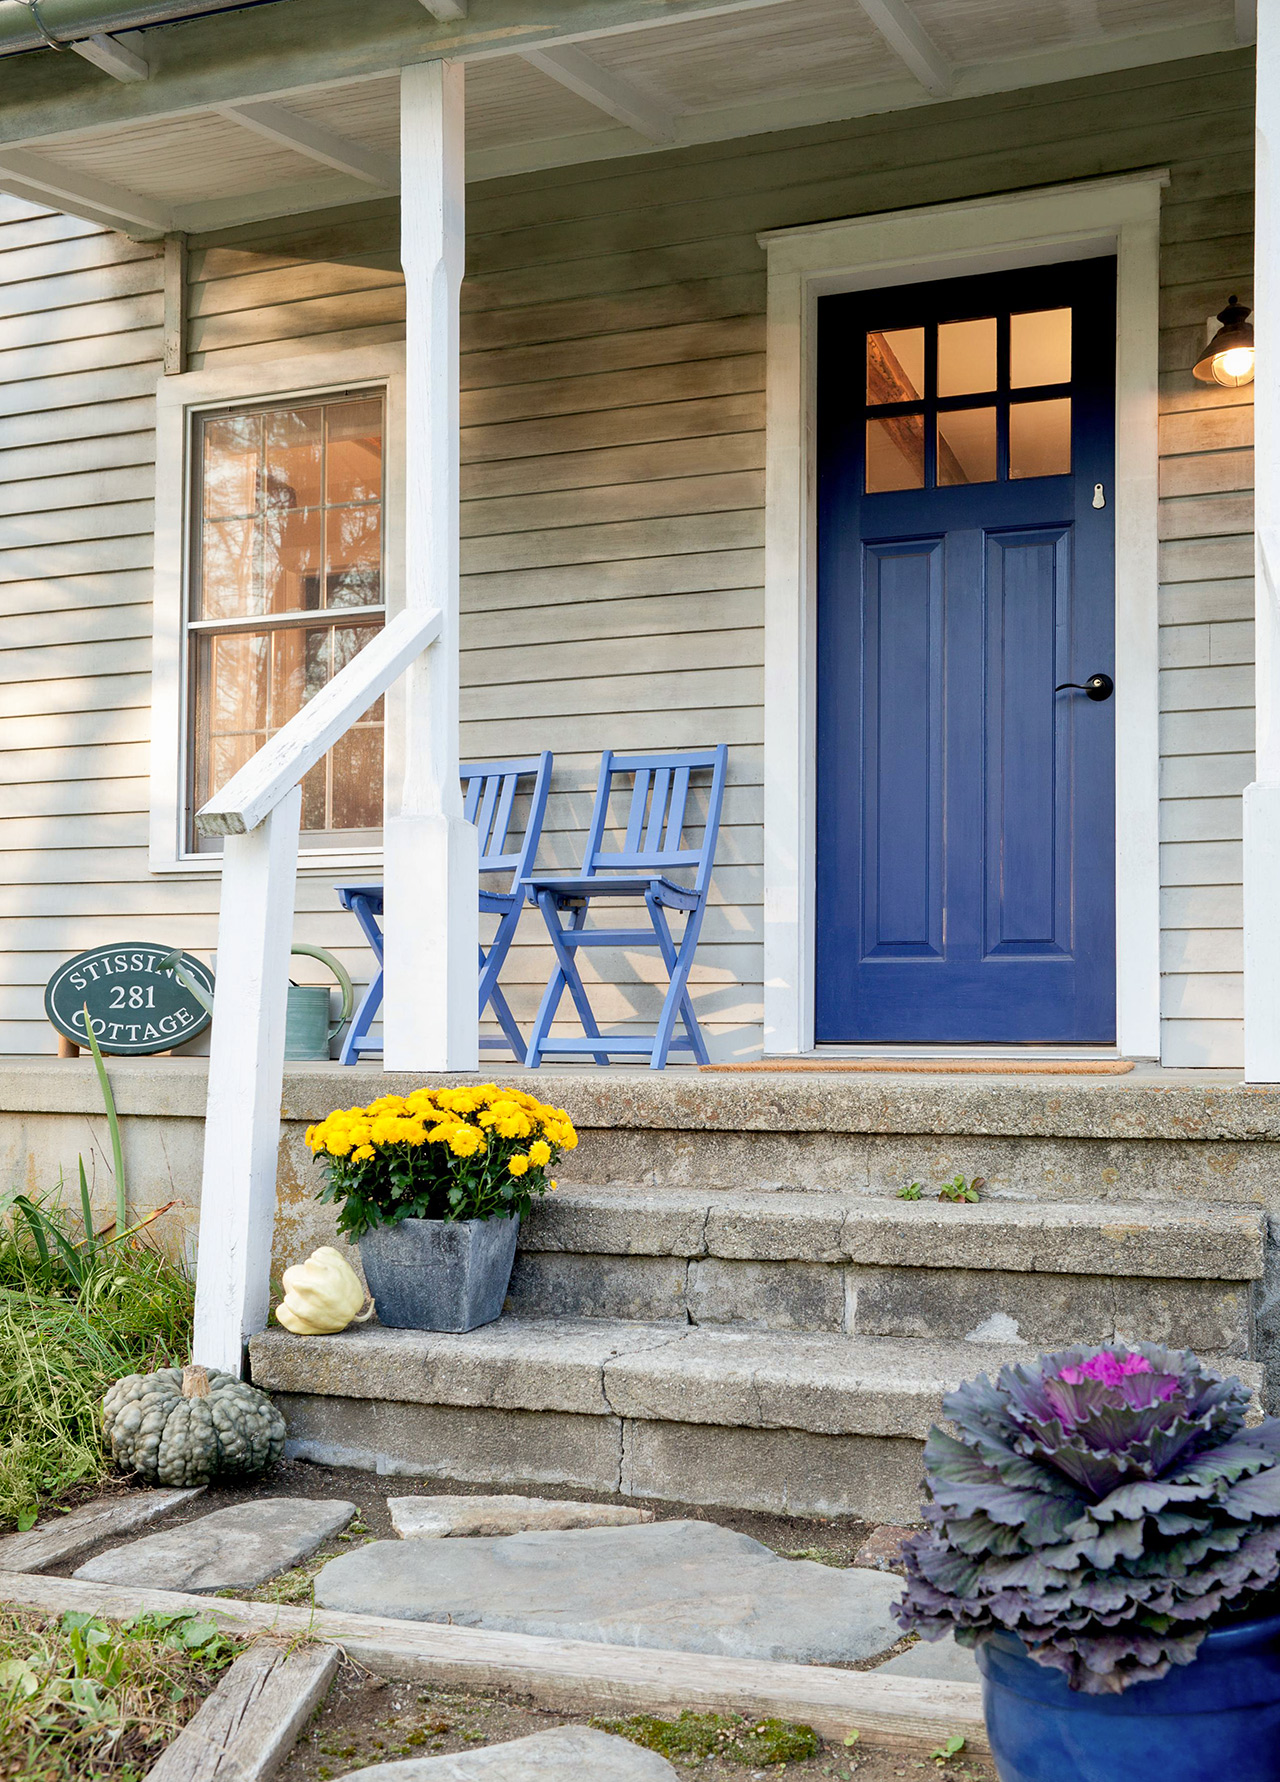 cinderblock patio with stairs up to blue door